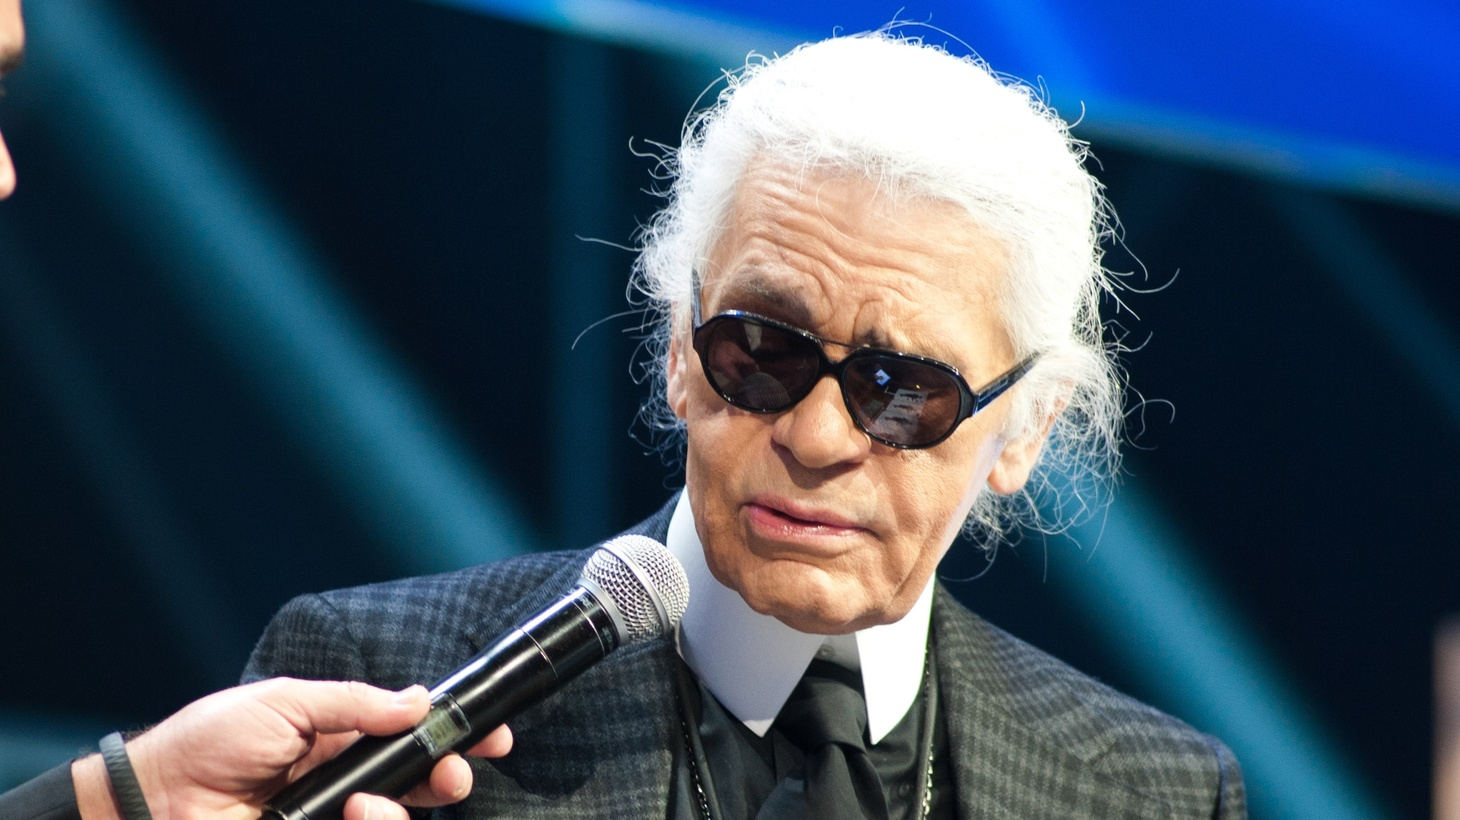 Karl Lagerfeld at LeWebb Conference 2011.